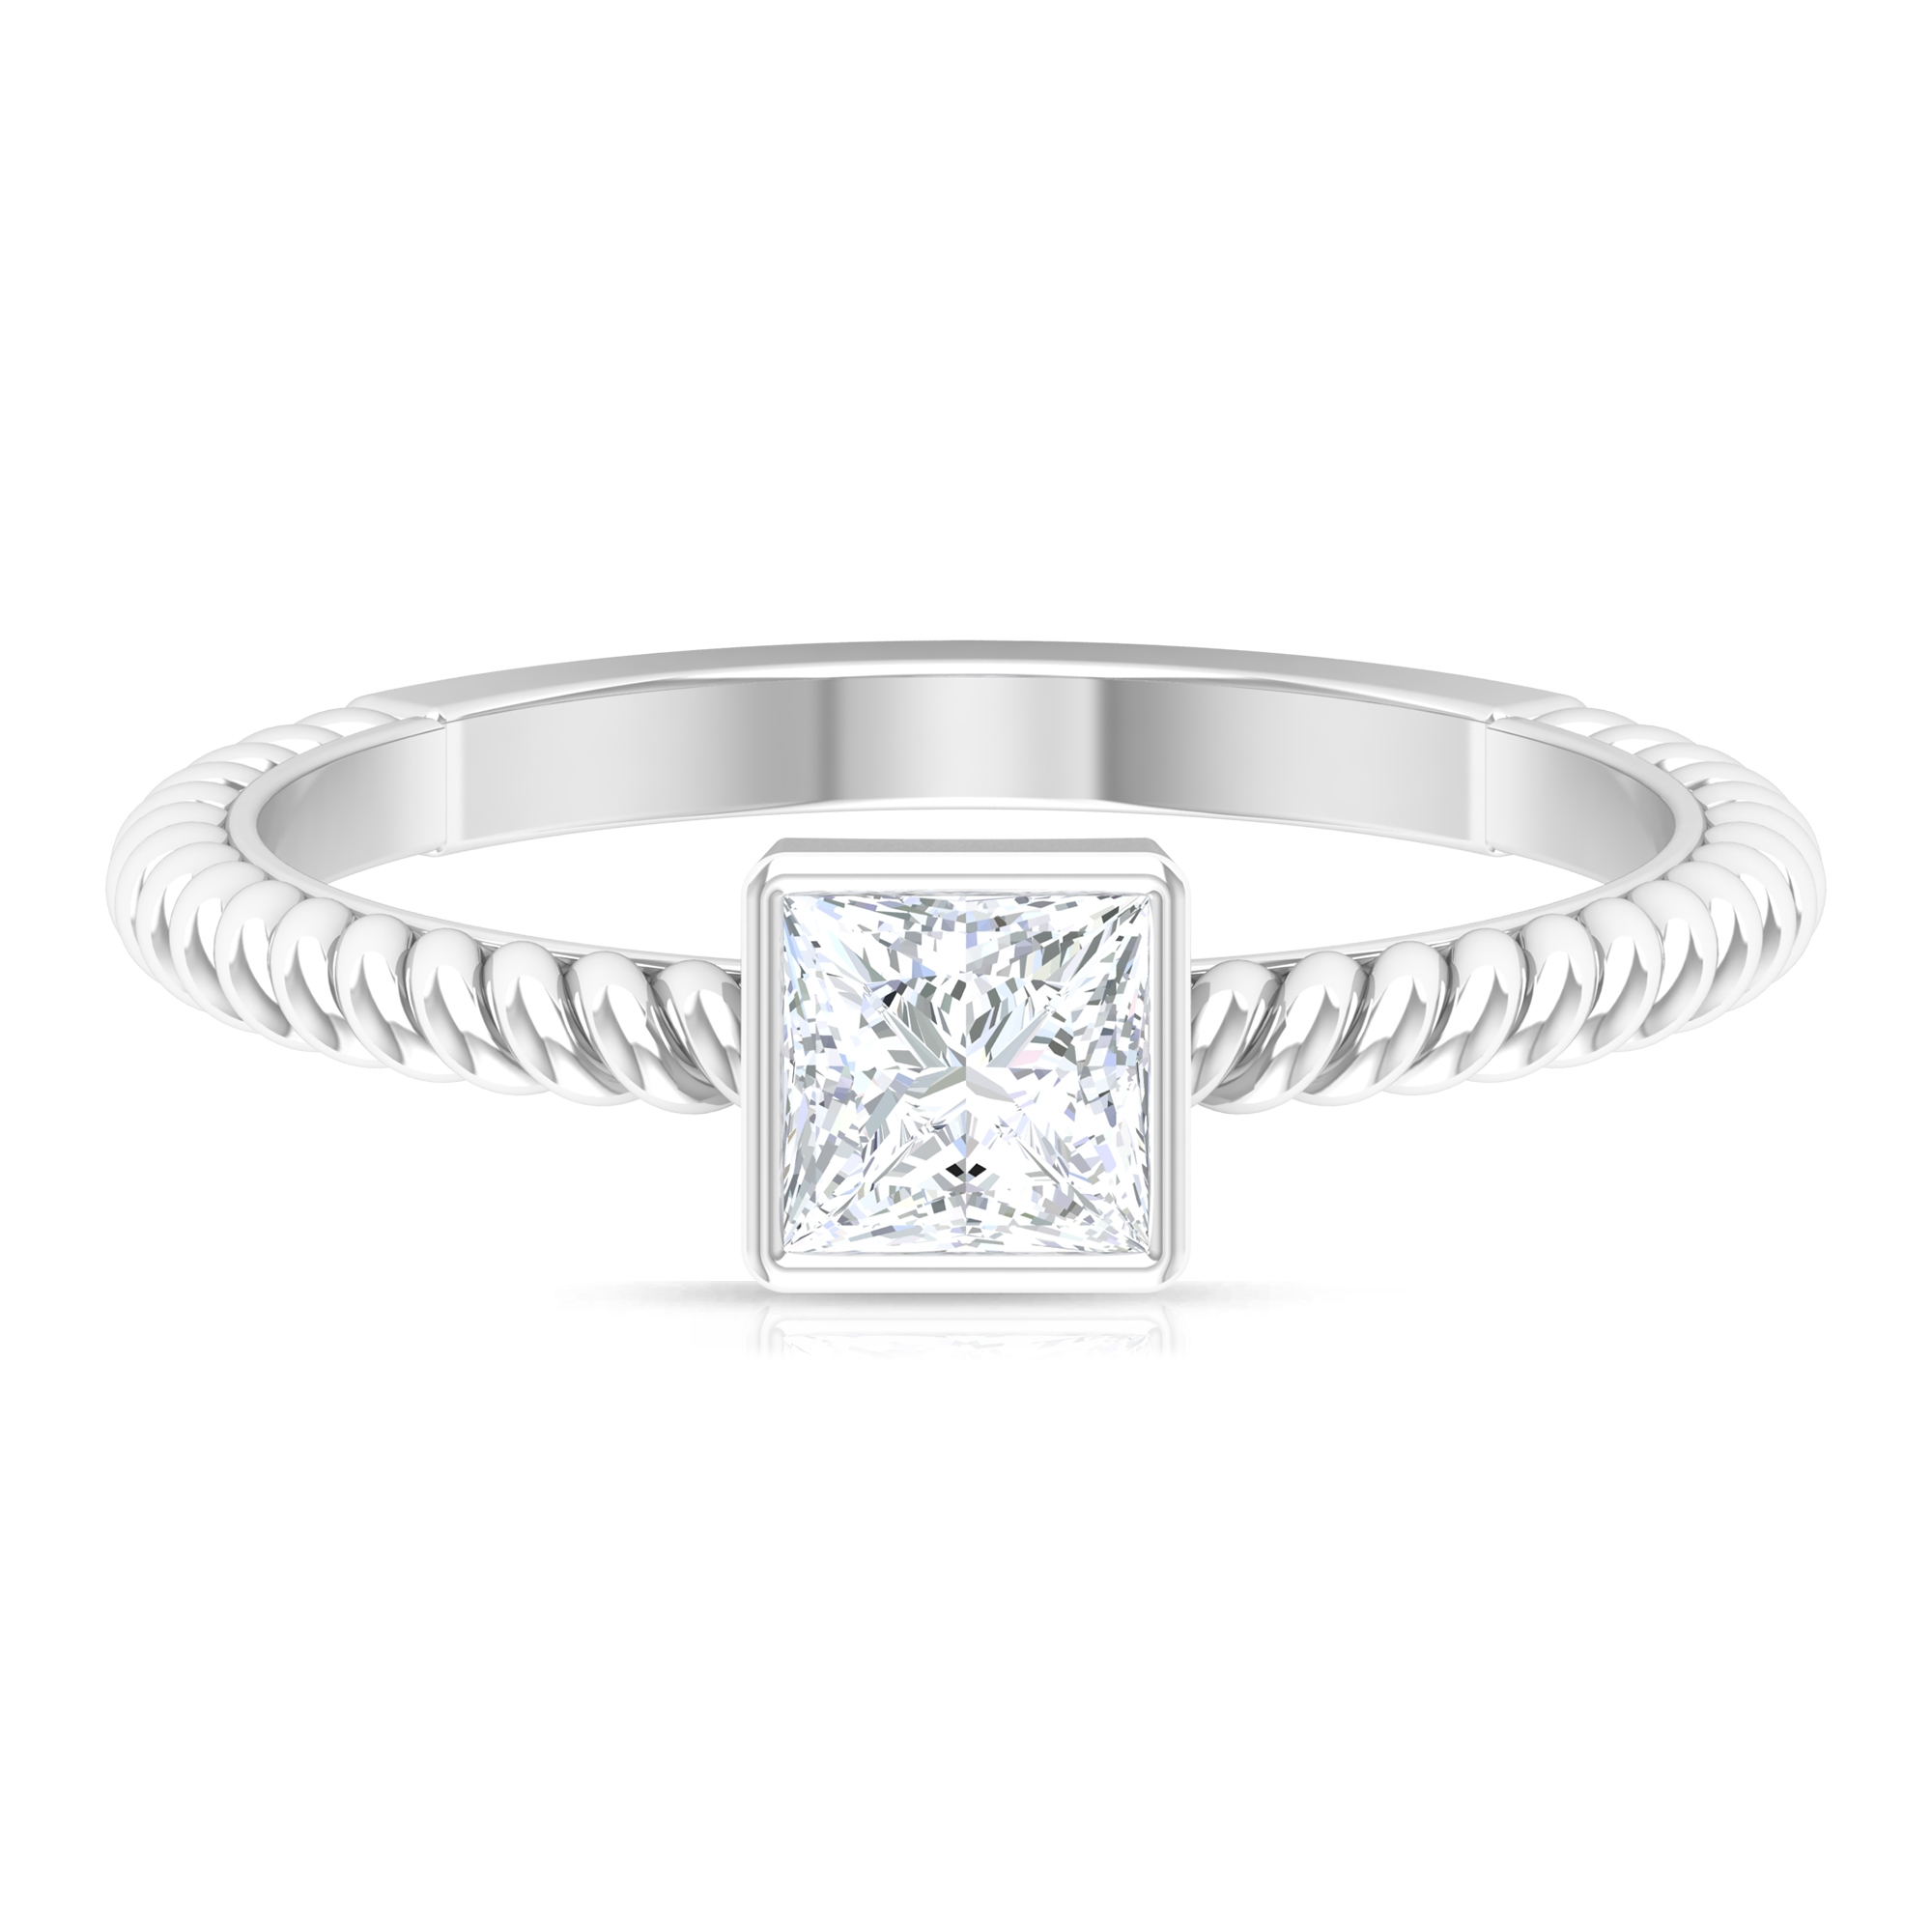 1/2 CT Diamond Solitaire Bezel Set Ring with Rope Frame